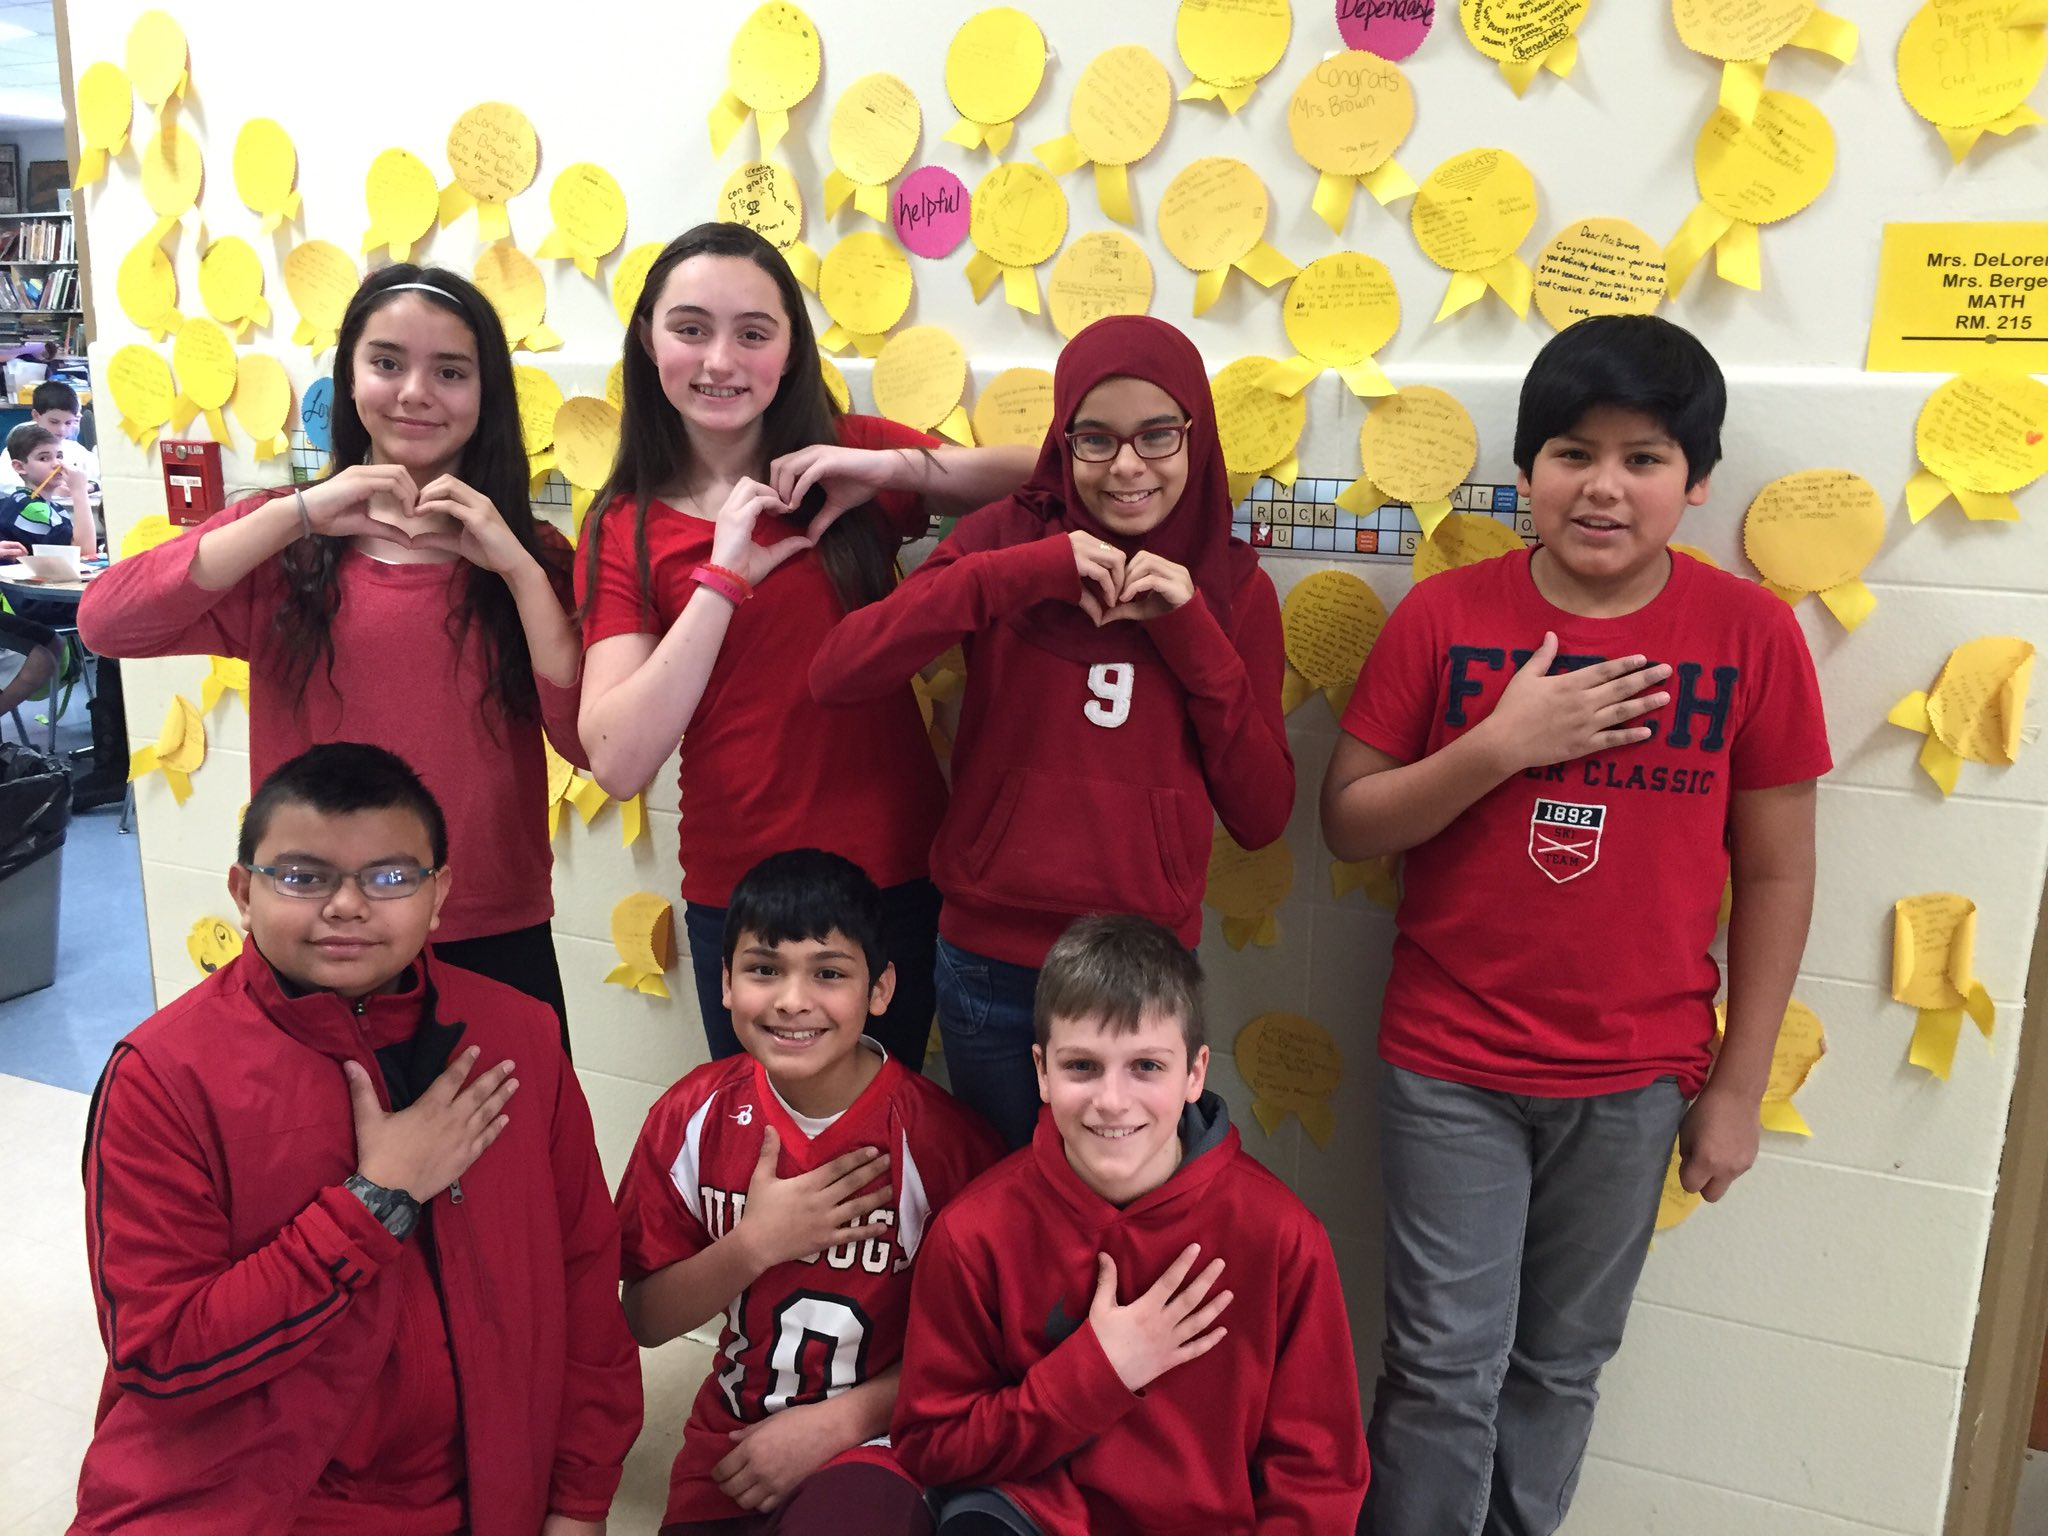 silas wood school on twitter silas students and staff wear red silas wood school on twitter silas students and staff wear red to support the american heart association t co uadvpqseyh